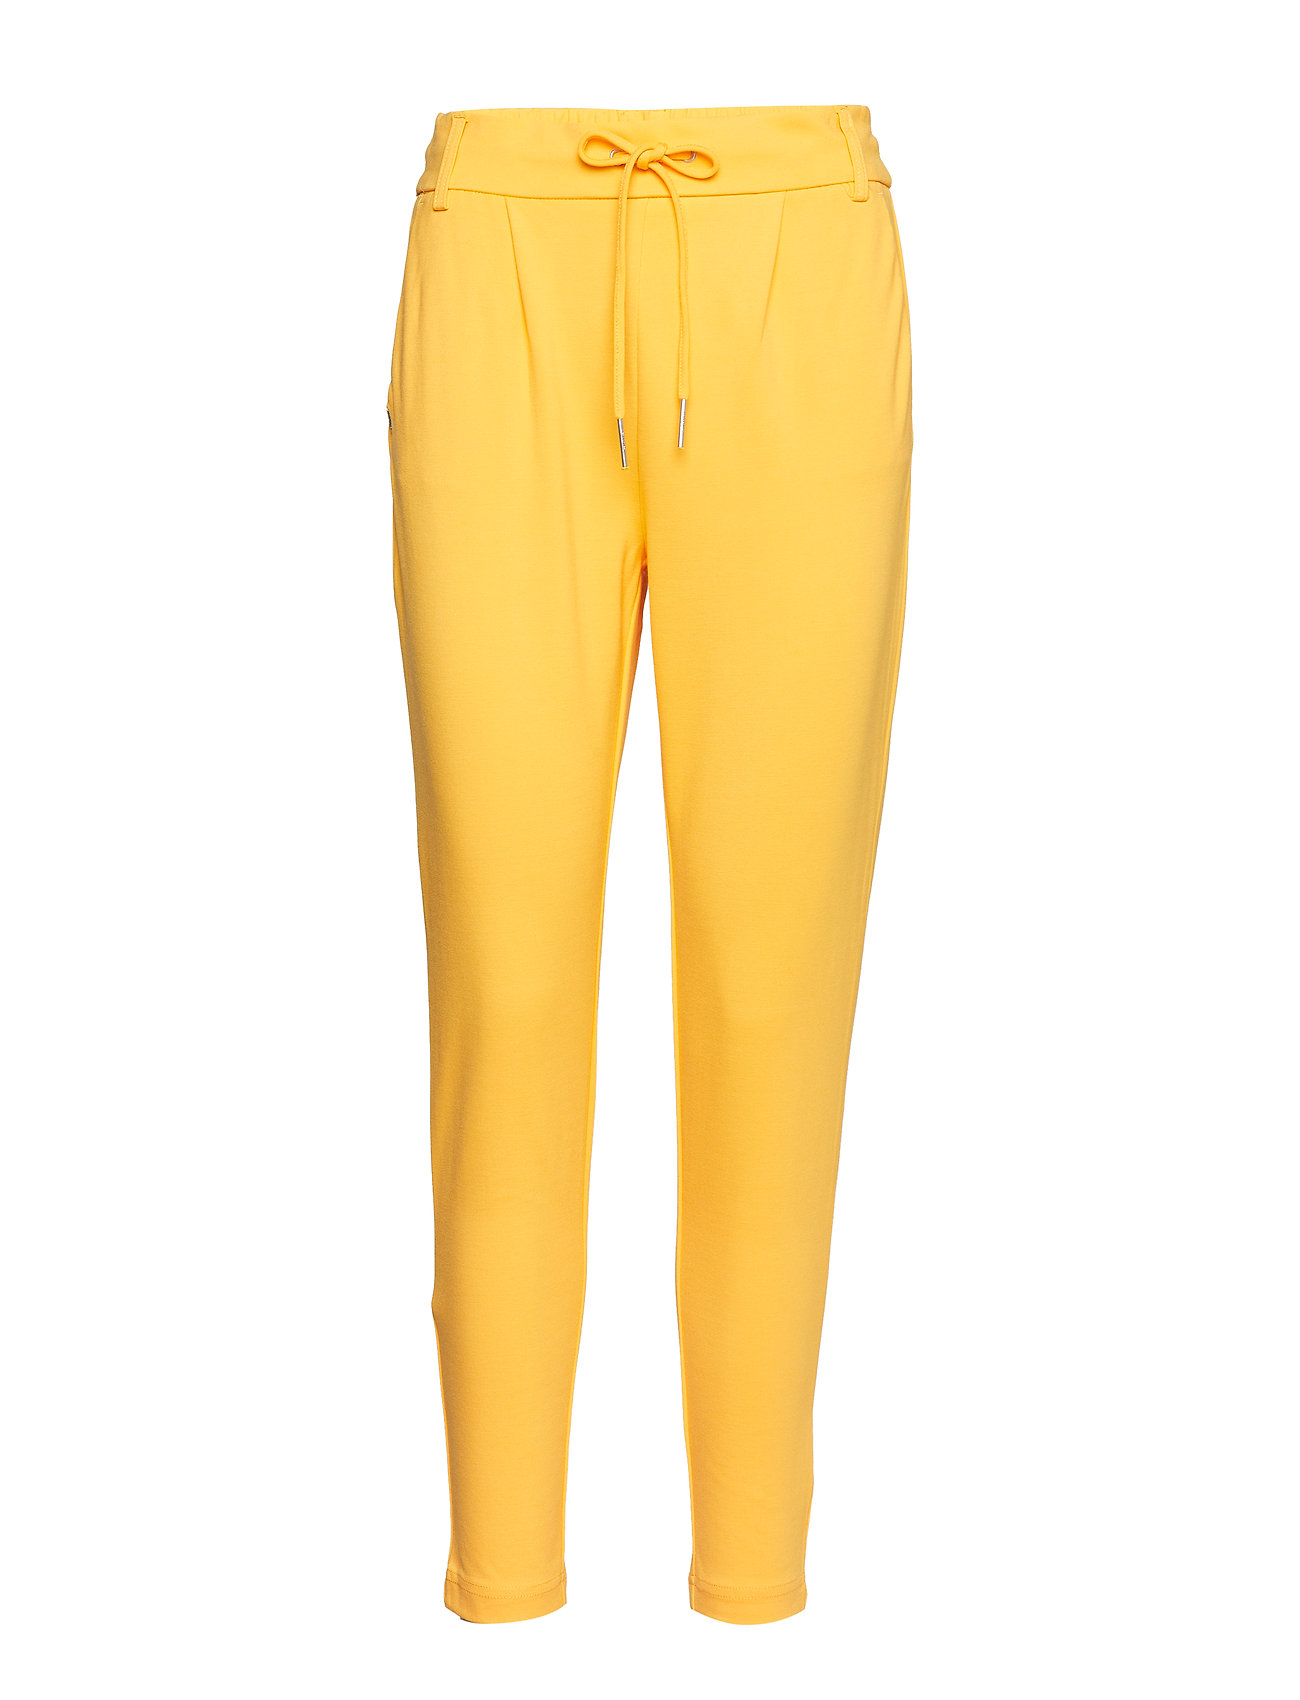 Image of Onlpoptrash Easy Colour Pant Pnt Noos Casual Bukser Gul ONLY (3147694109)